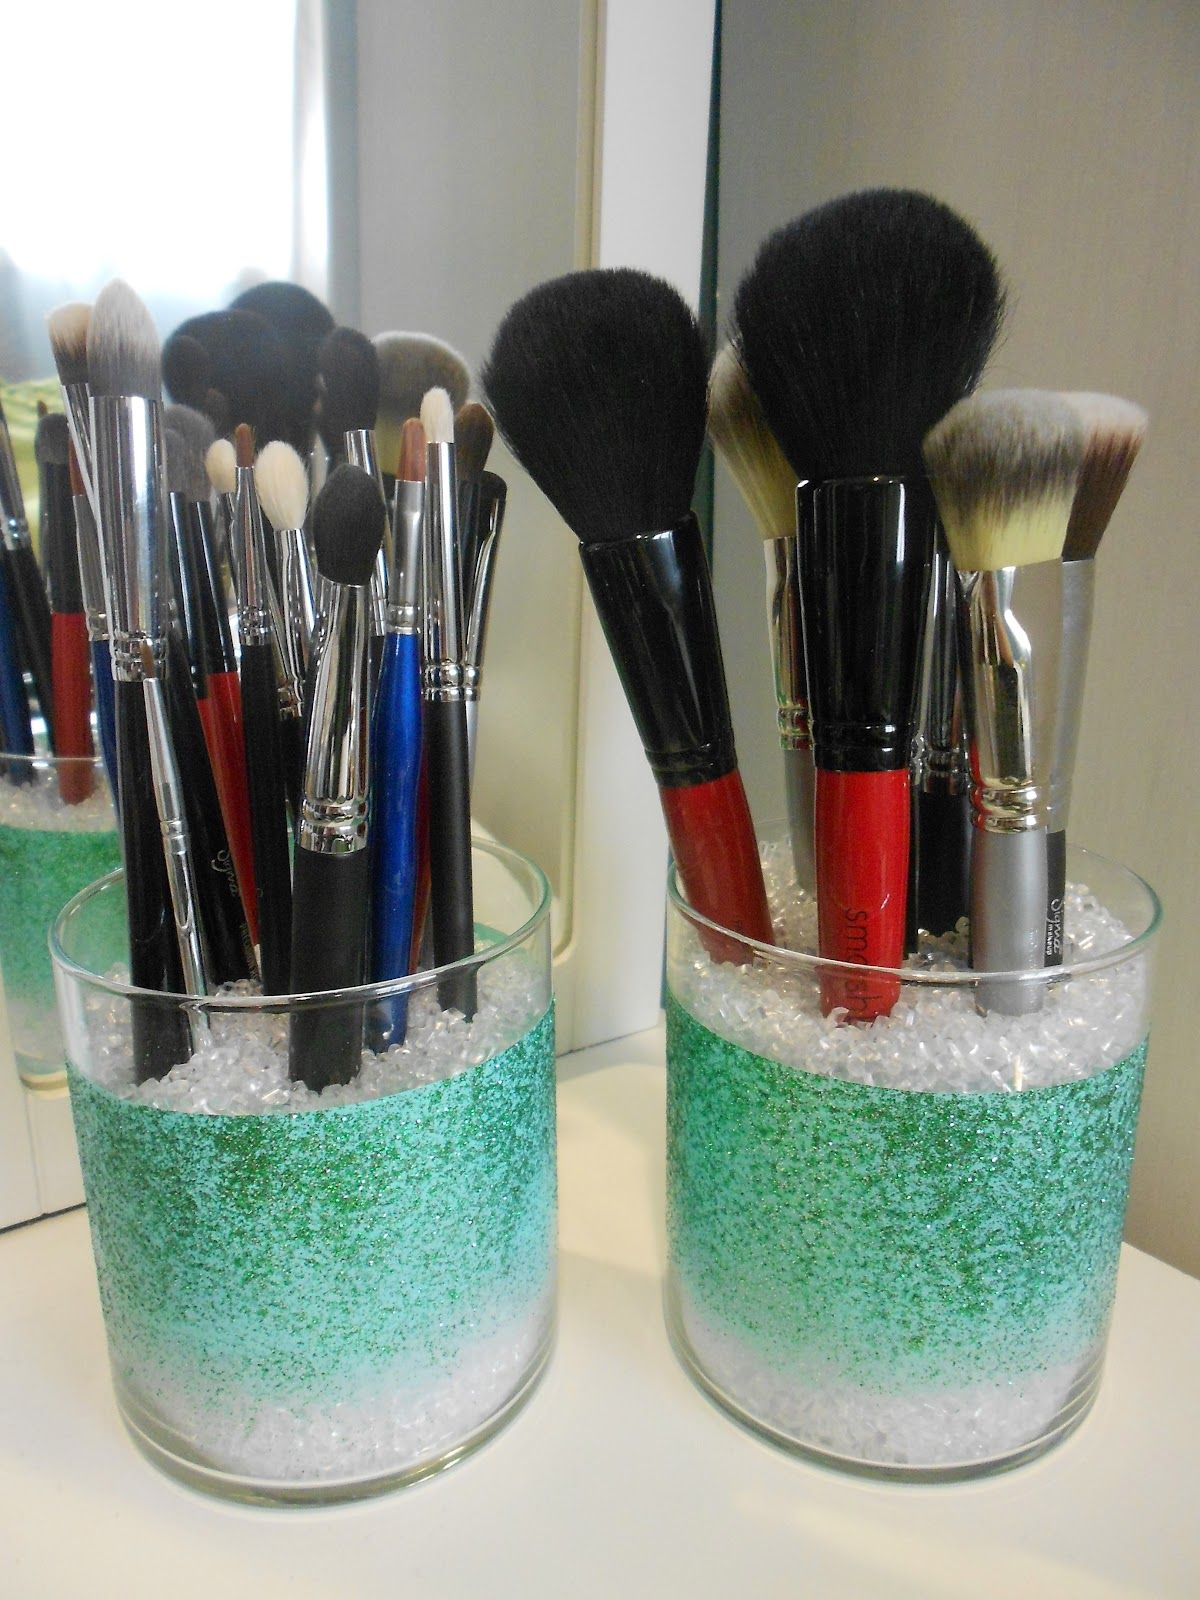 Makeup brushes  MAKEUP BRUSH HOLDERS